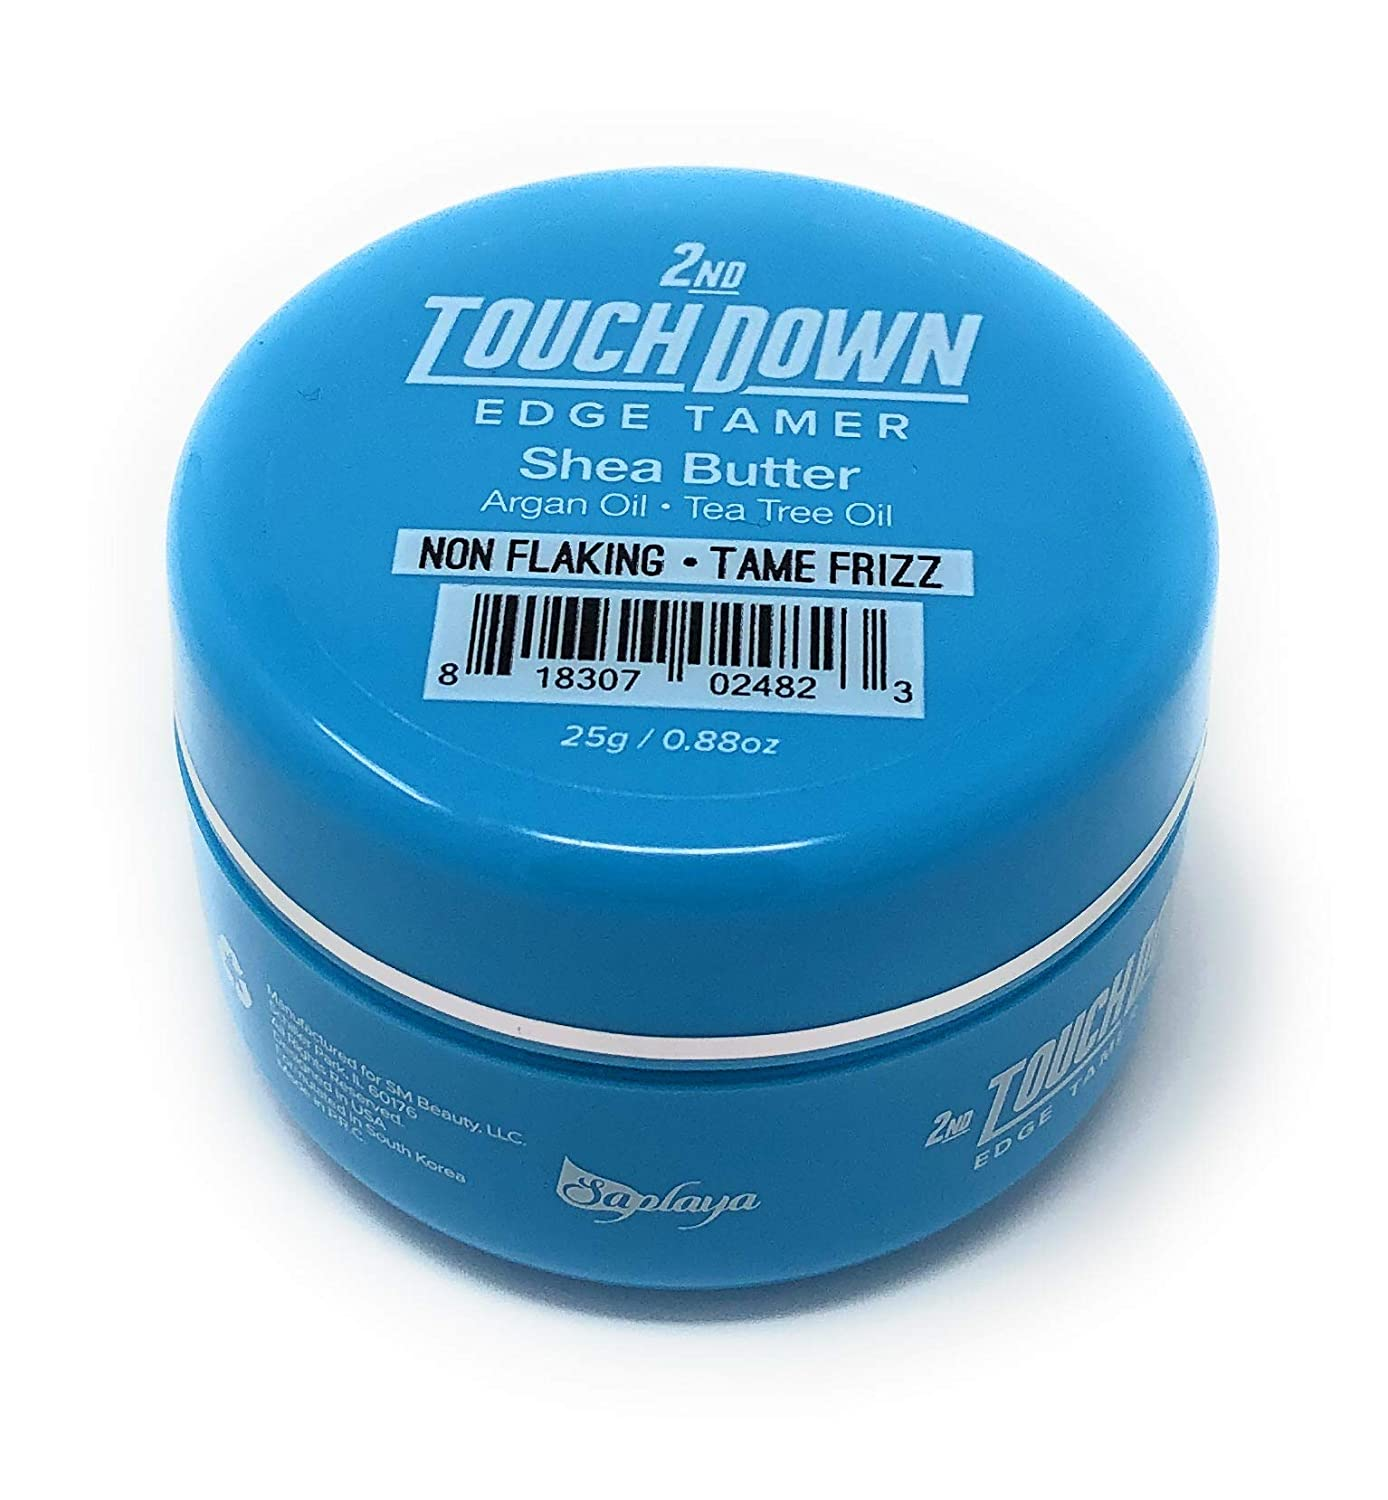 2nd Touch Down Edge Tamer (Shea Butter, 25g / .88oz)